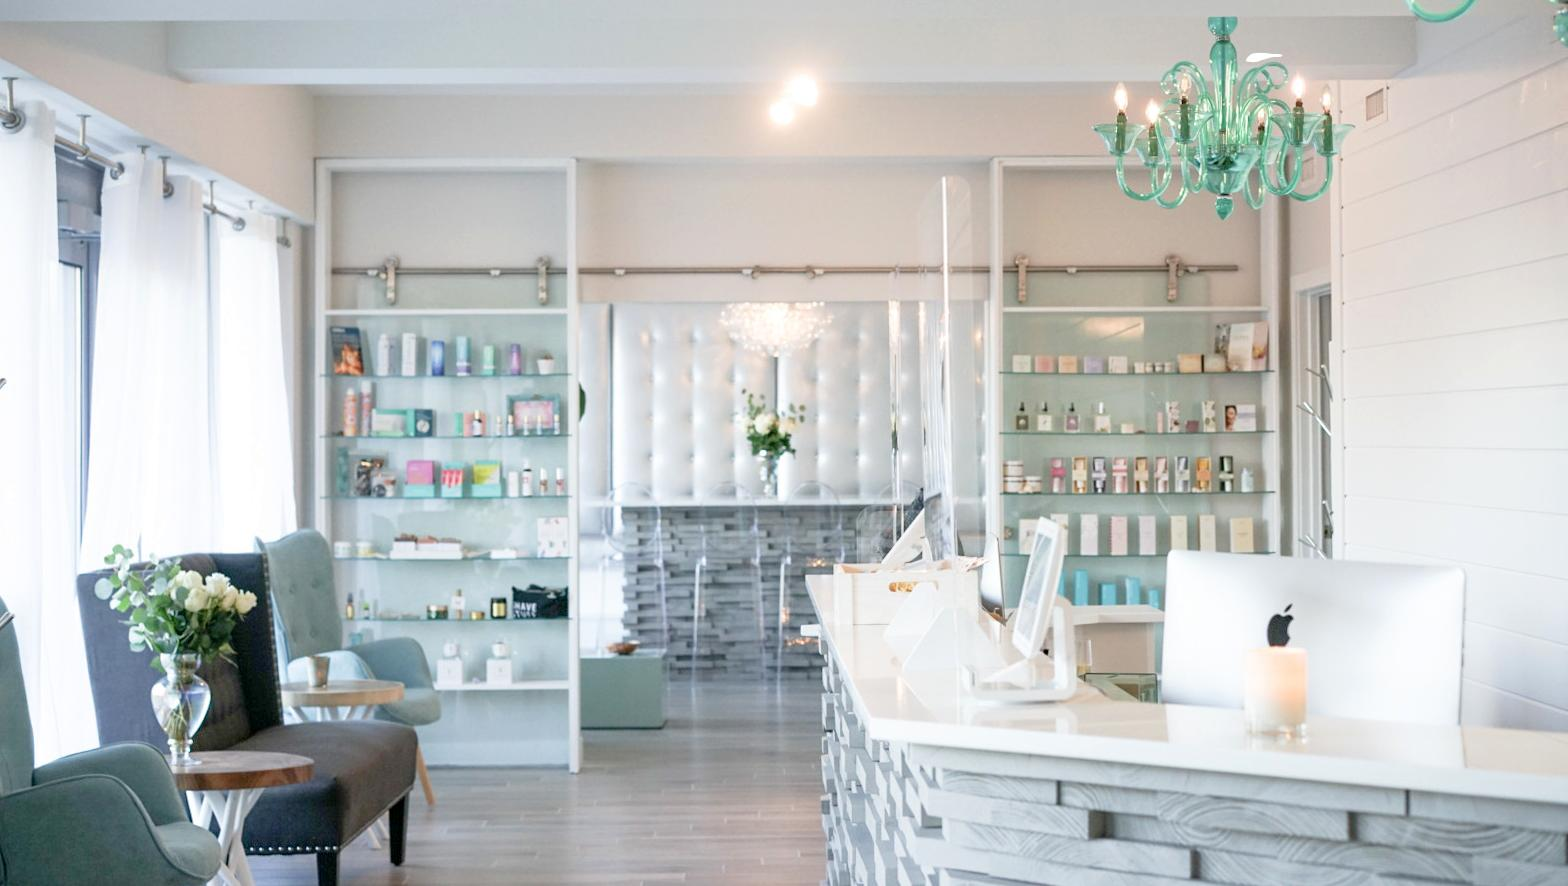 BEACH HOUSE DAY SPA GROWS DESPITE PANDEMIC WOES